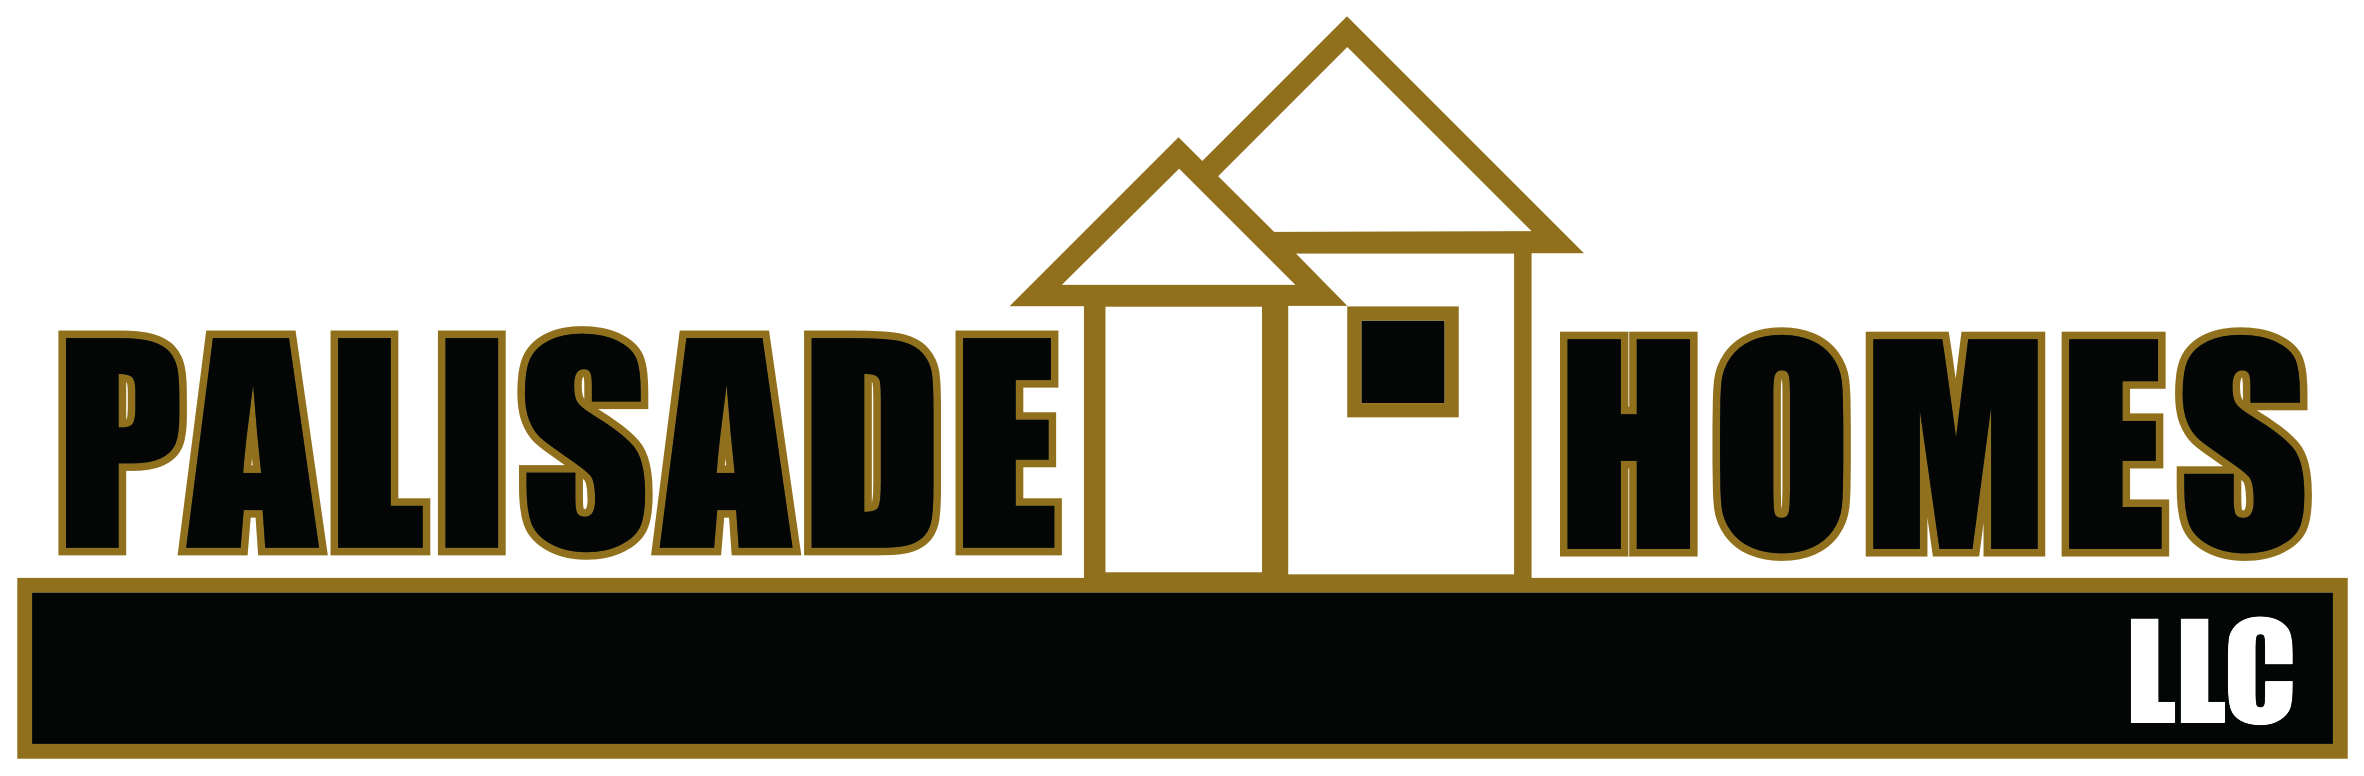 Palisade Homes Logo 6-8-07.jpg